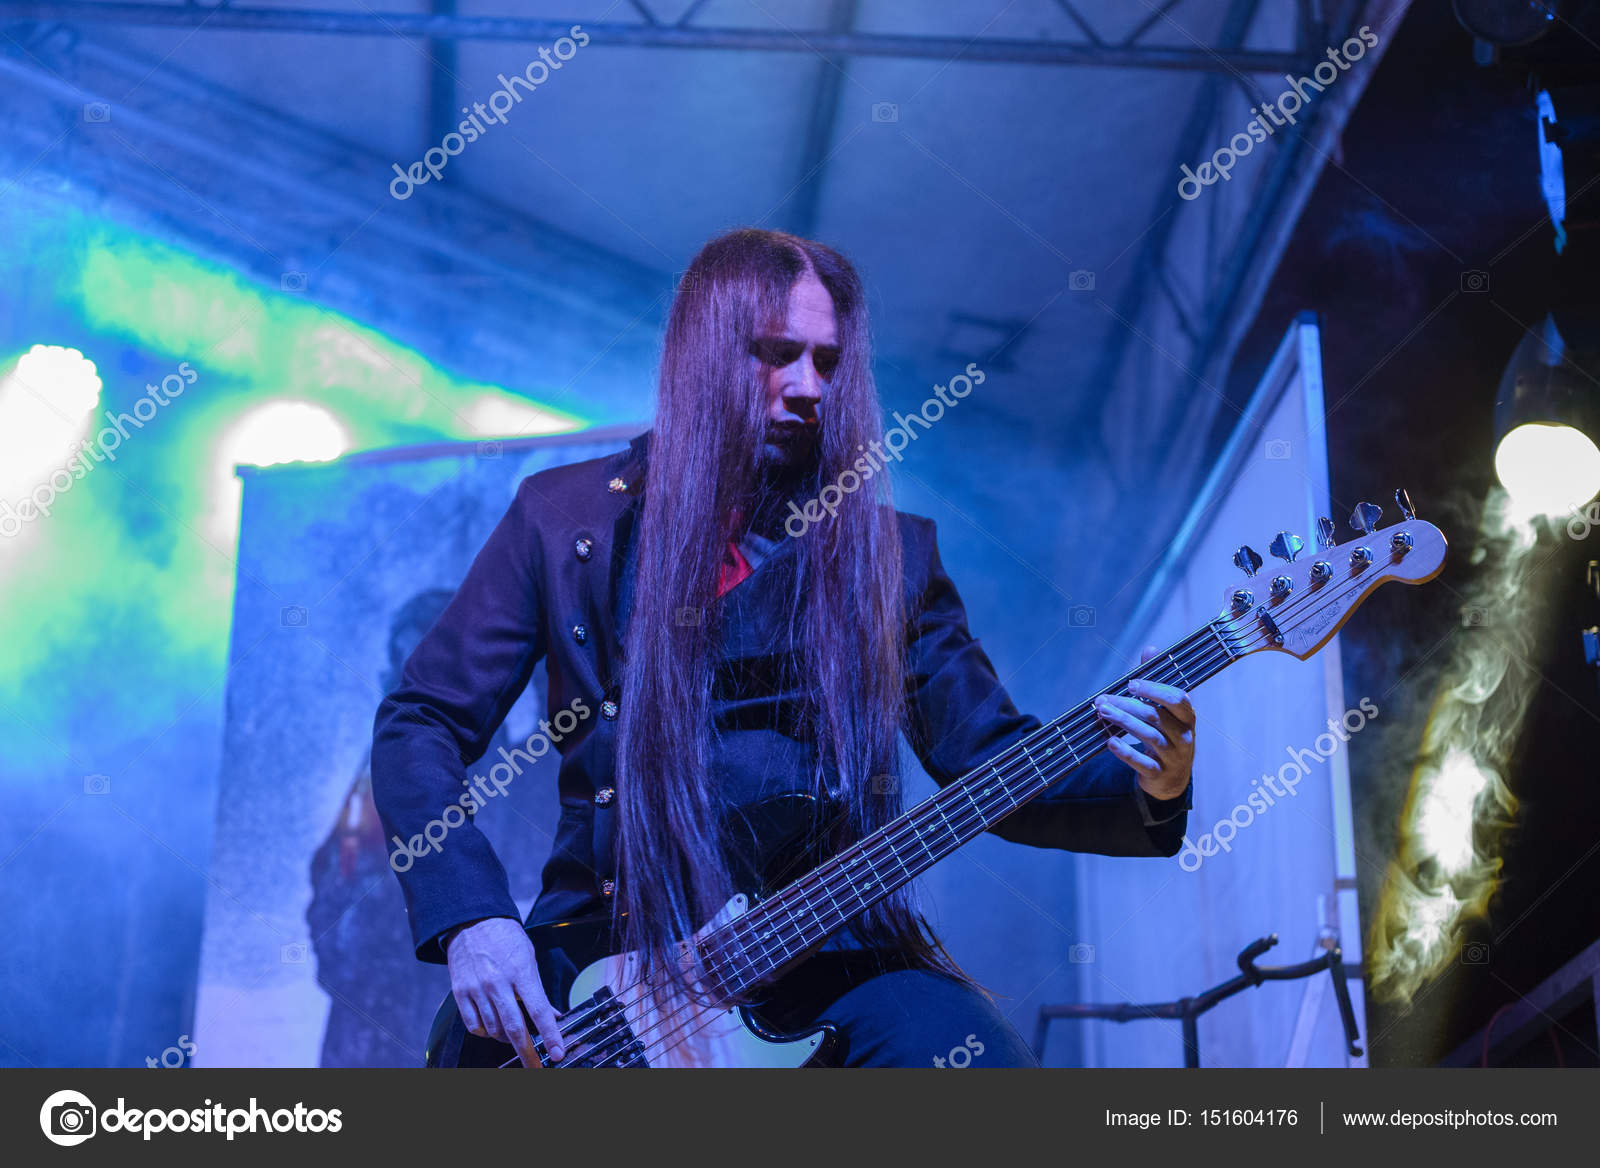 Dark Lunacy live at Insubria Festival 2017 (MI) – Stock Editorial